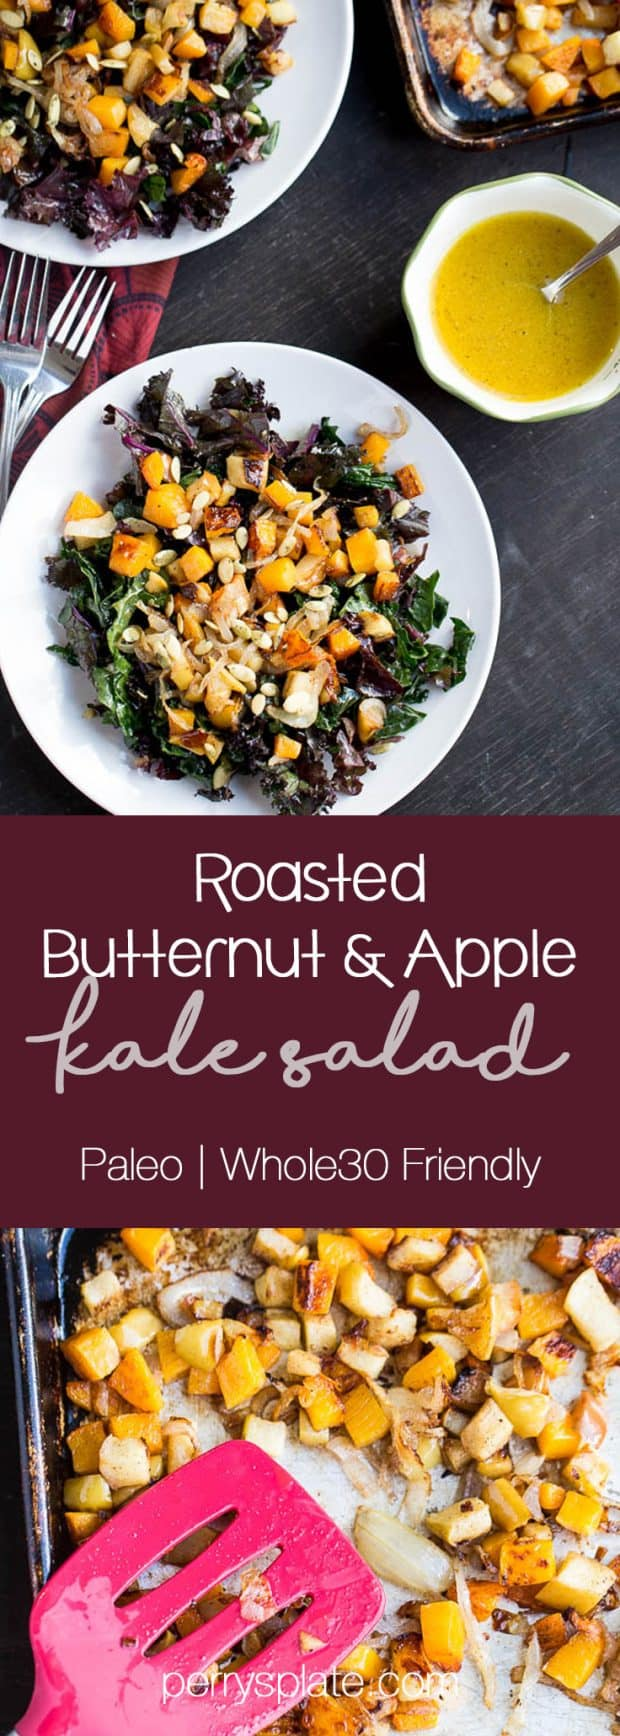 Kale Salad with Roasted Butternut Squash & Apples | paleo recipes | Whole30 recipes | kale recipes | perrysplate.com